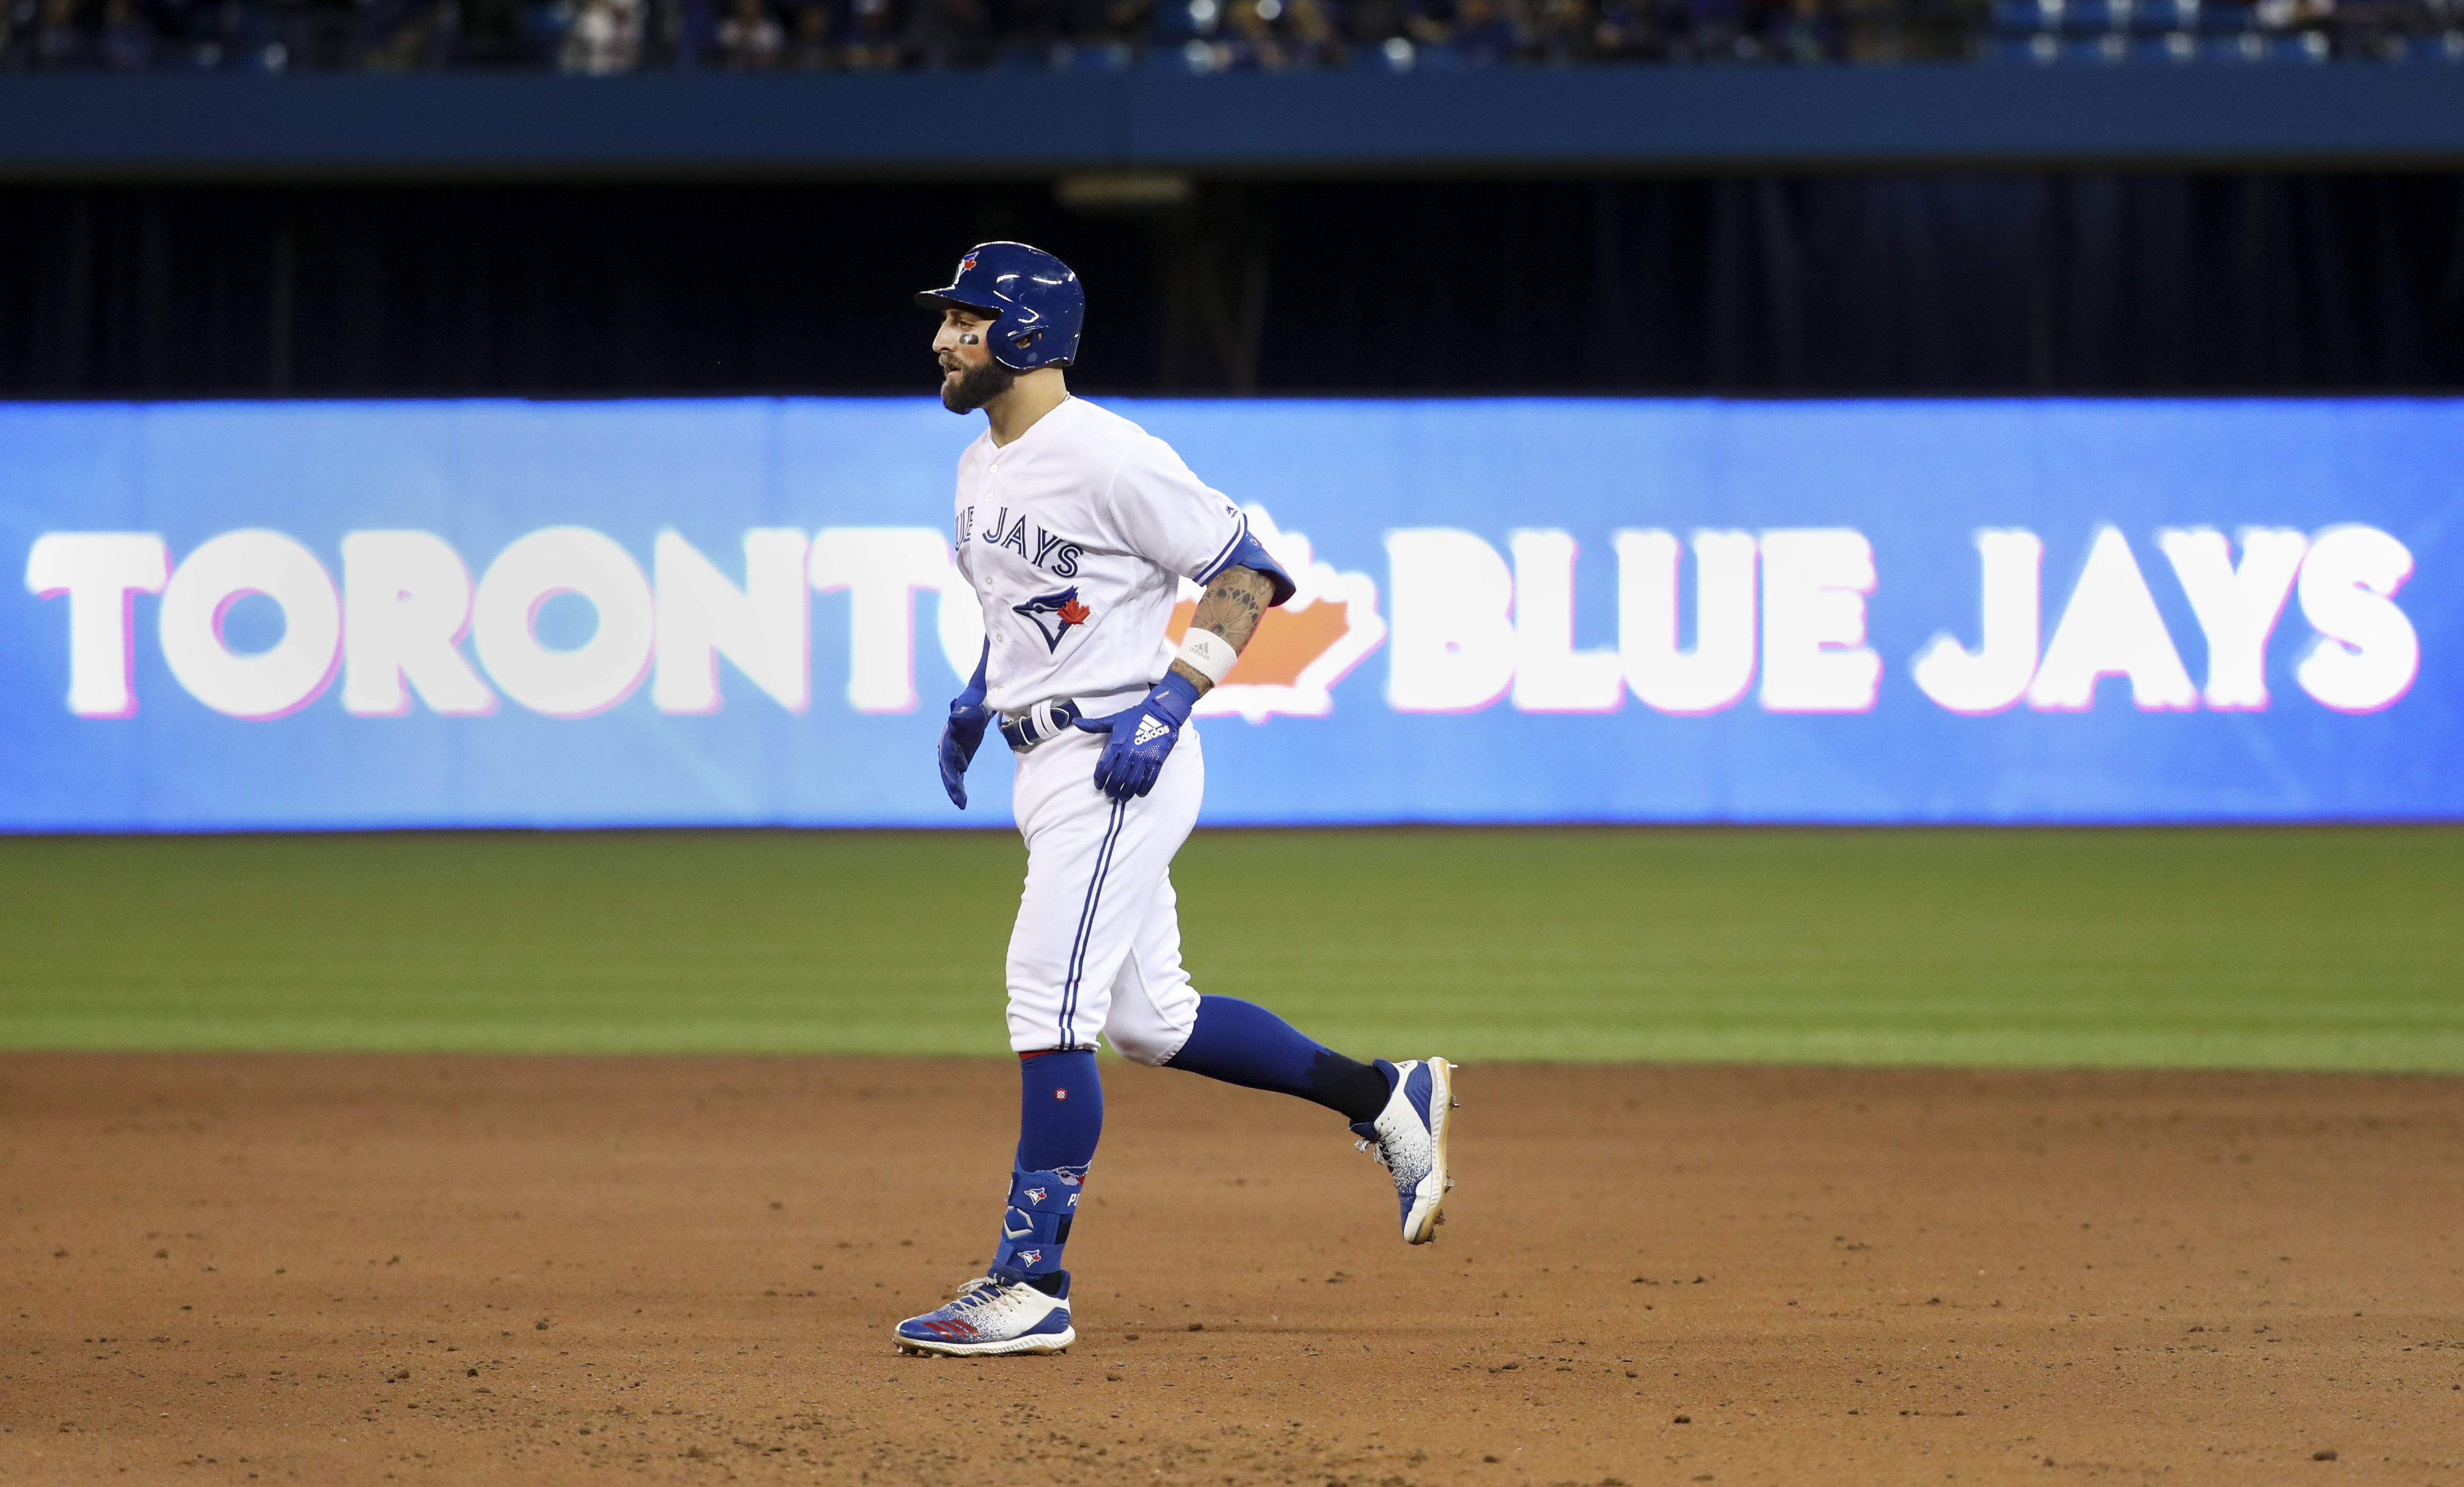 The Toronto Blue Jays took on the Detroit Tigers in the Jays Home Opener.